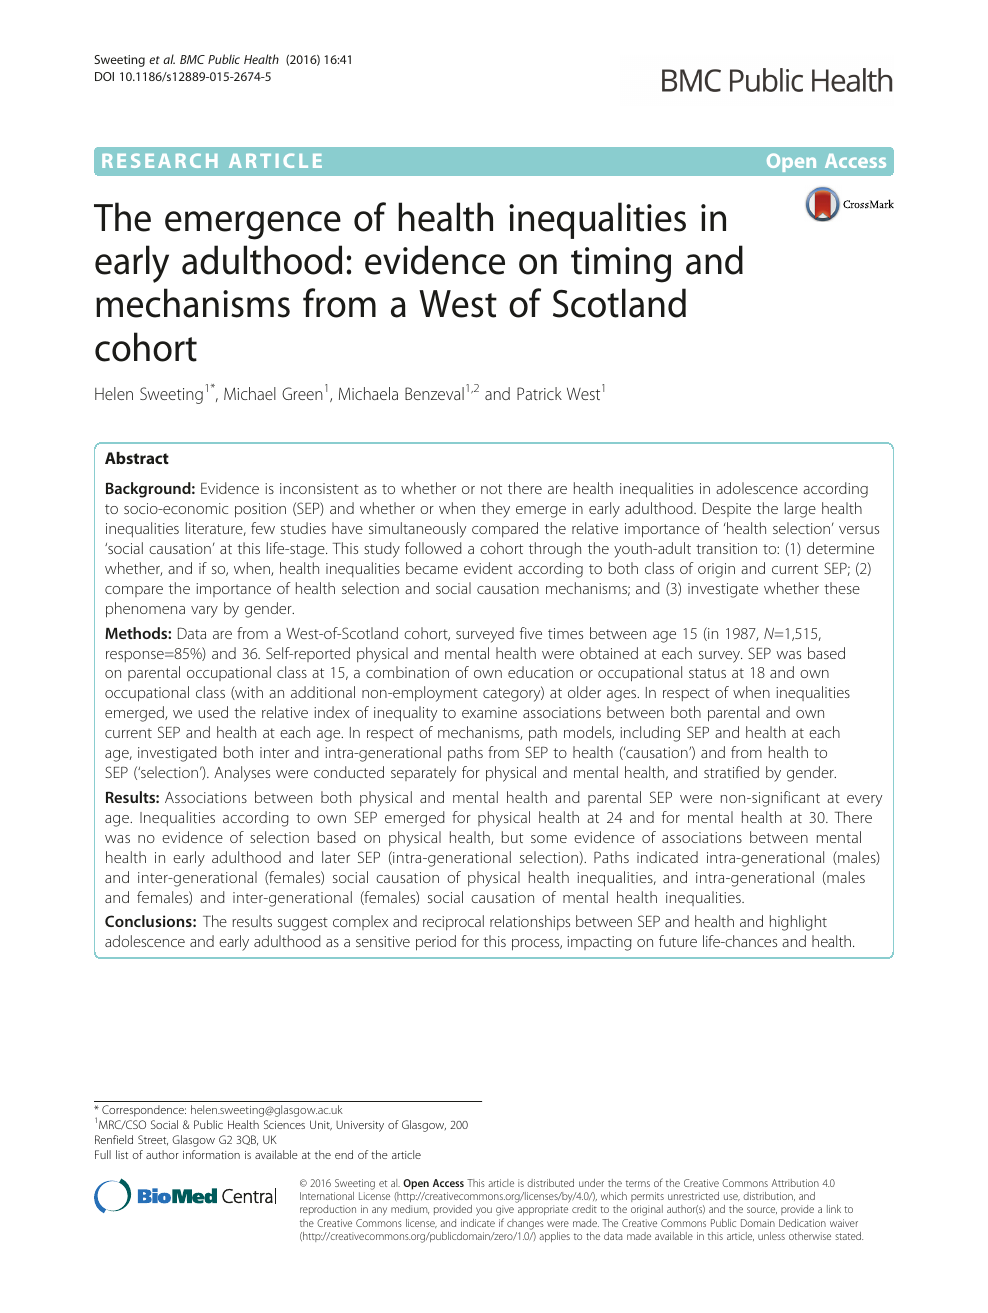 The emergence of health inequalities in early adulthood